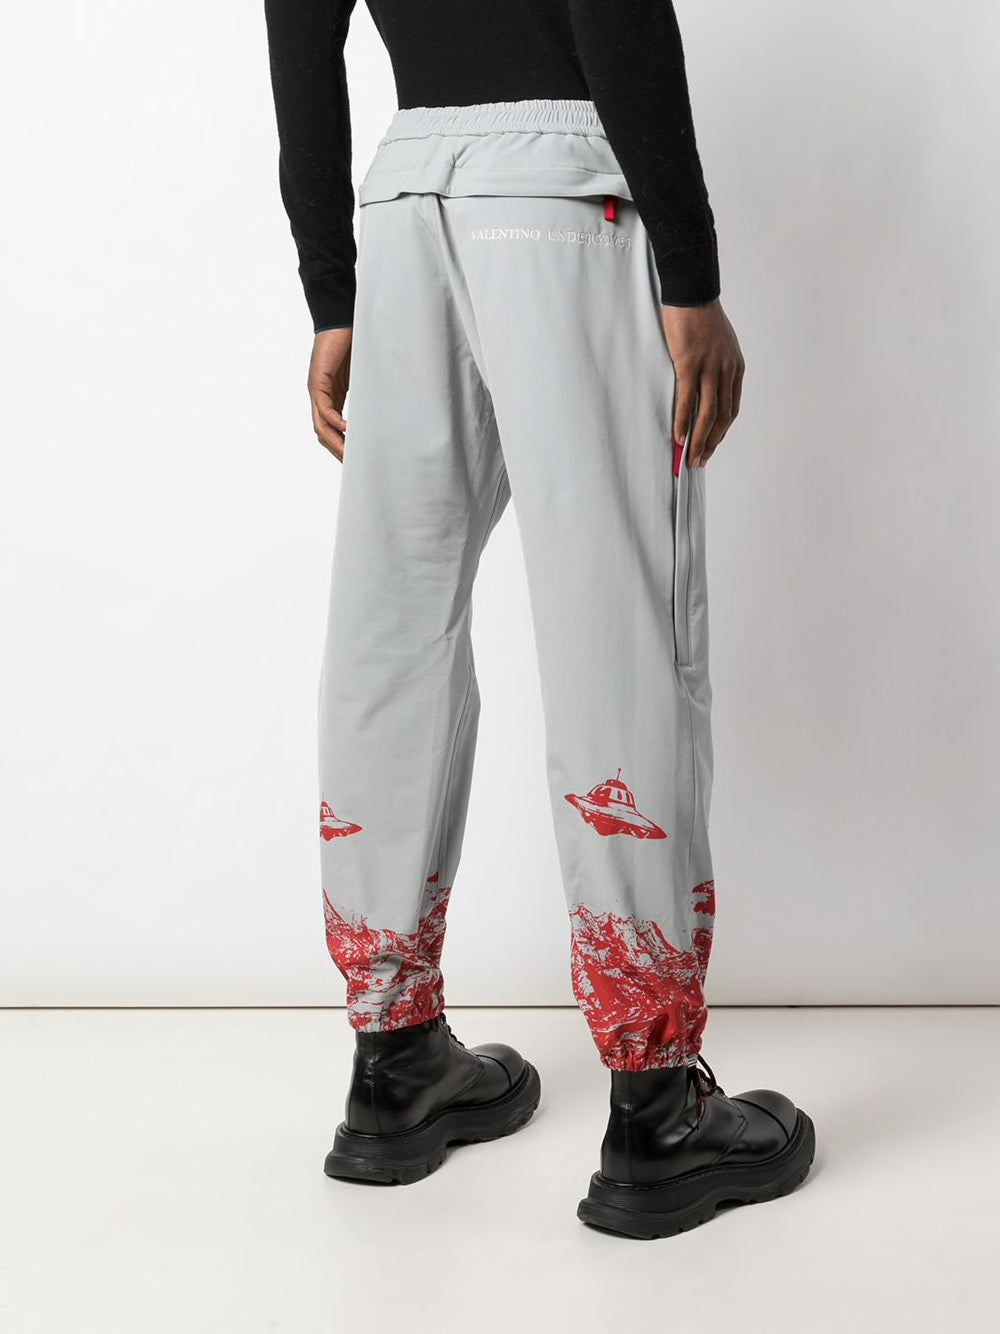 UNDERCOVER X VALENTINO MEN PRINTED TRACK PANTS